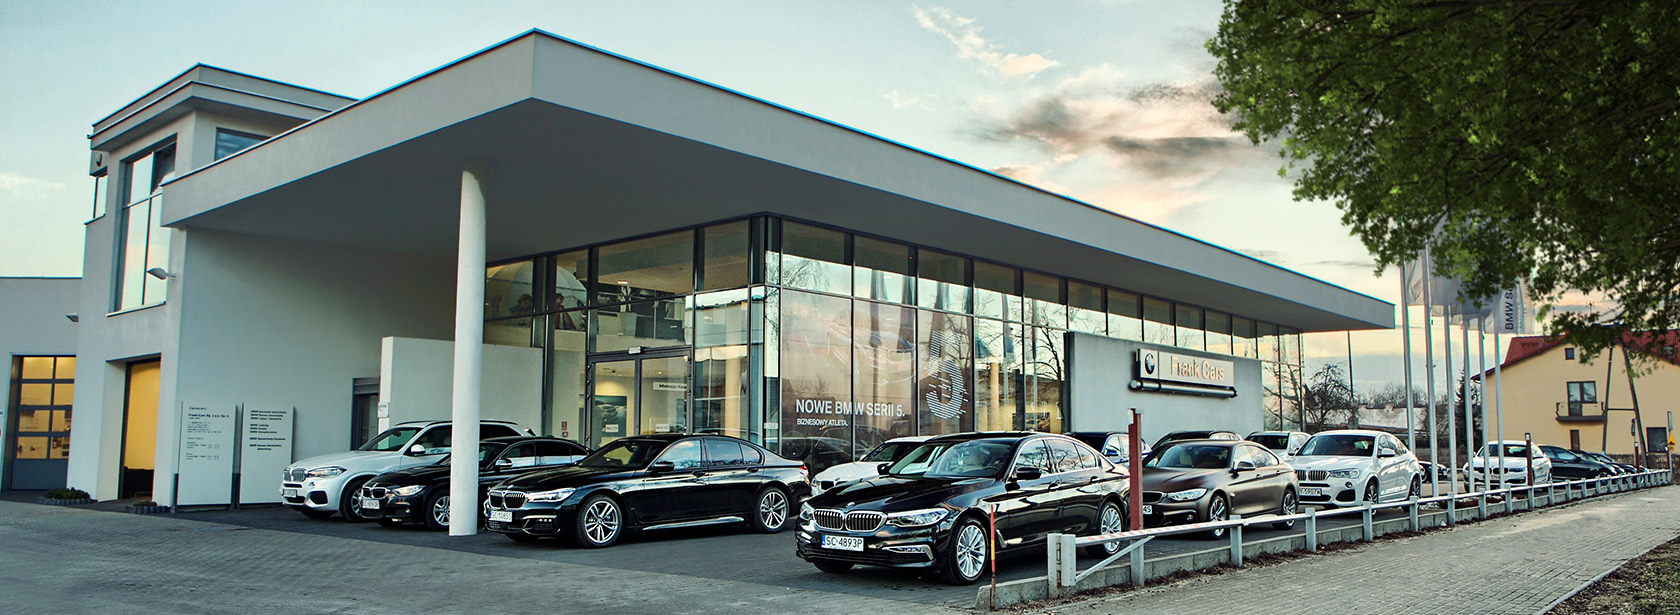 Salon Dealer BMW Frank-Cars.